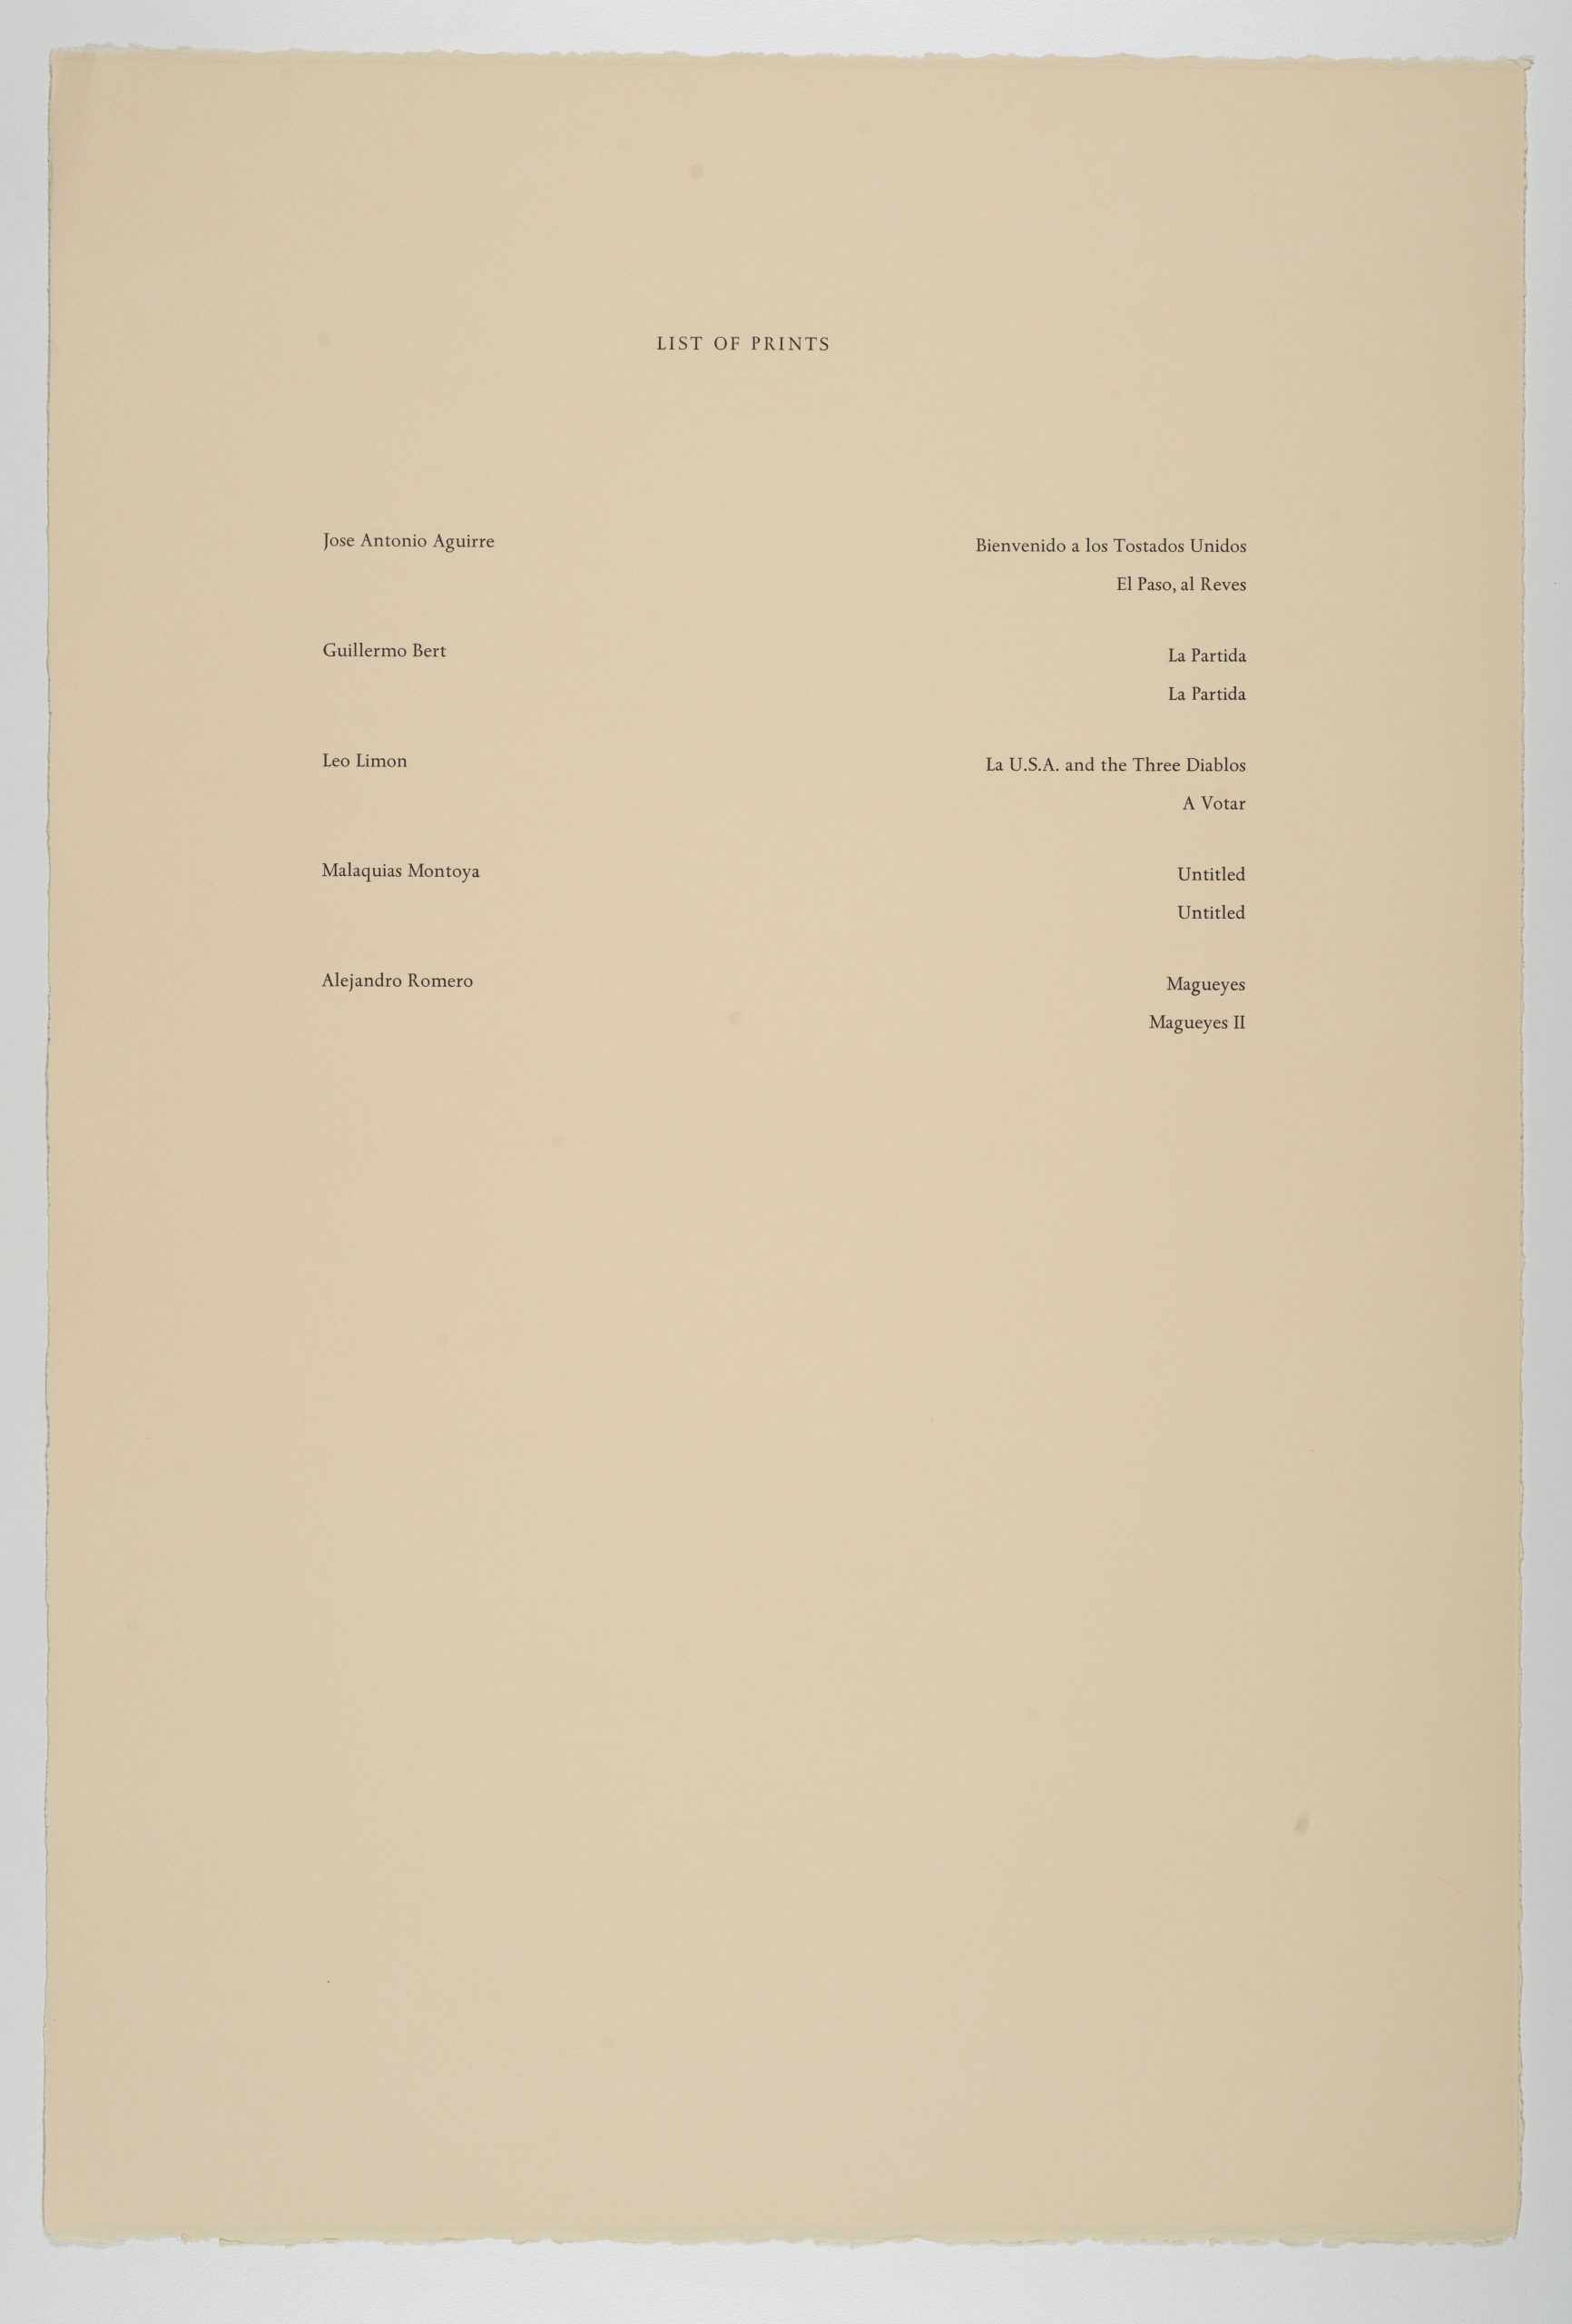 List of prints with artist names and titles, The New Immigration series, 1988